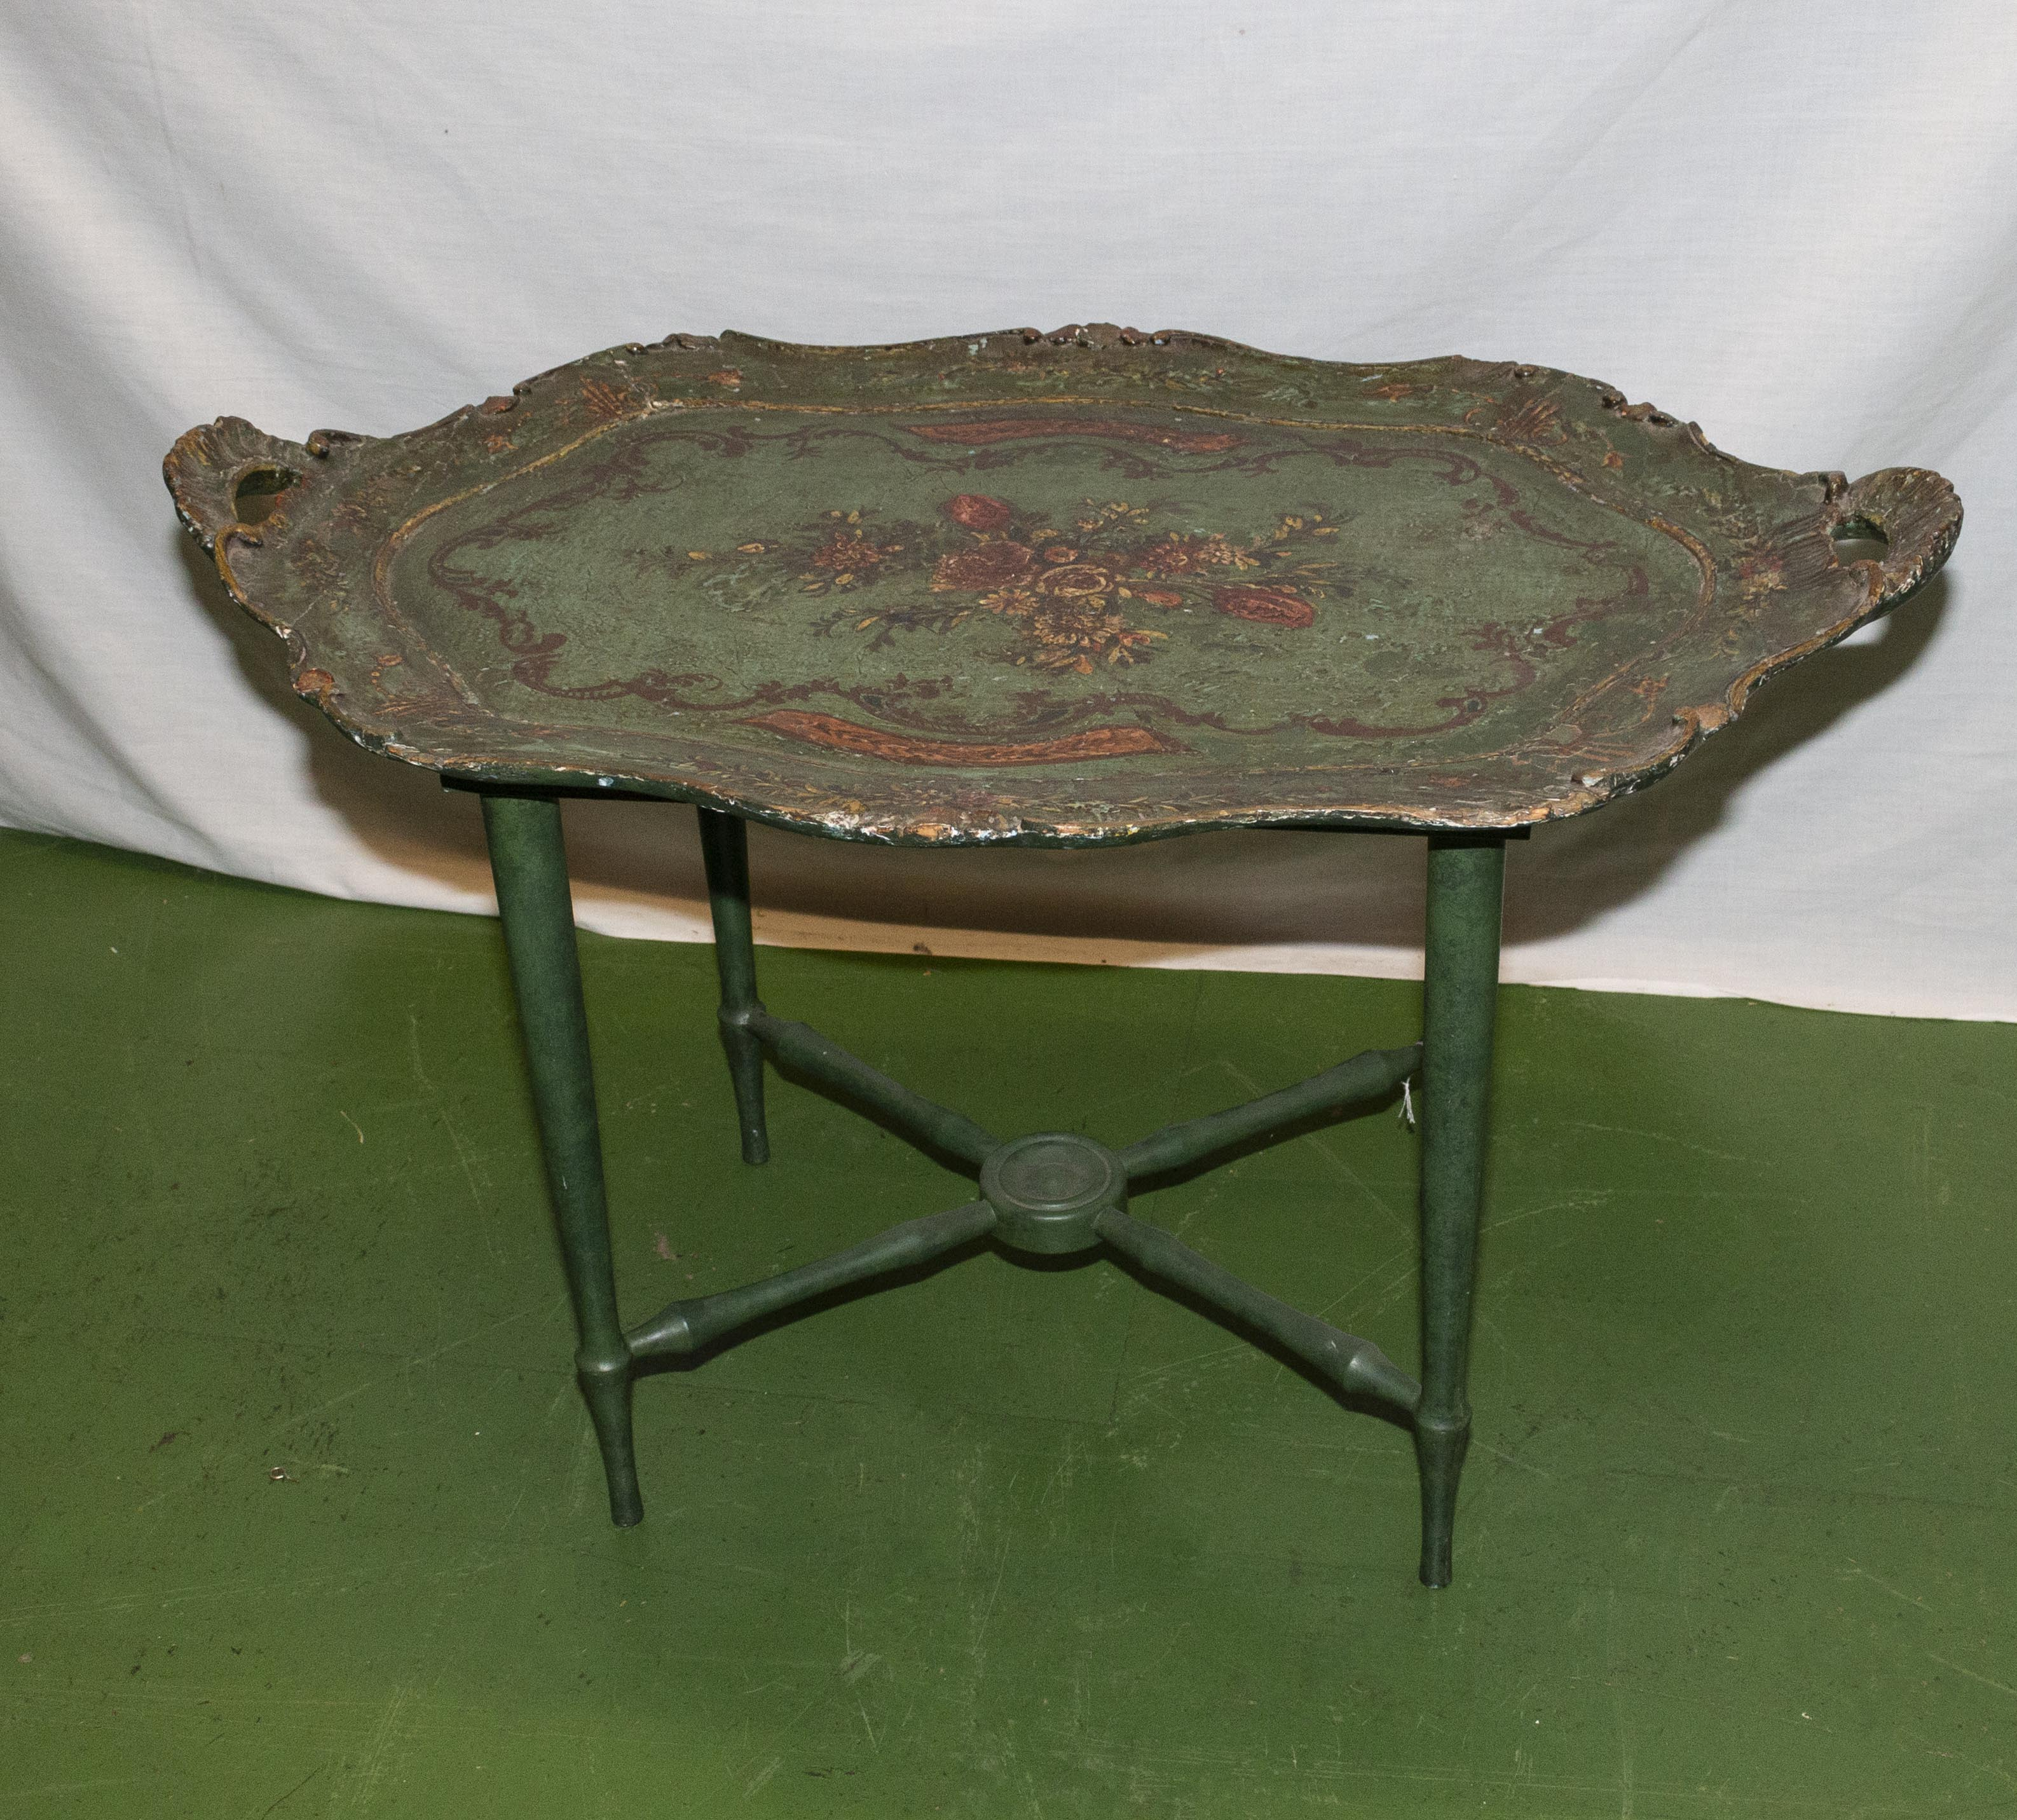 Lot 3 - A papier mache tray on a stand.